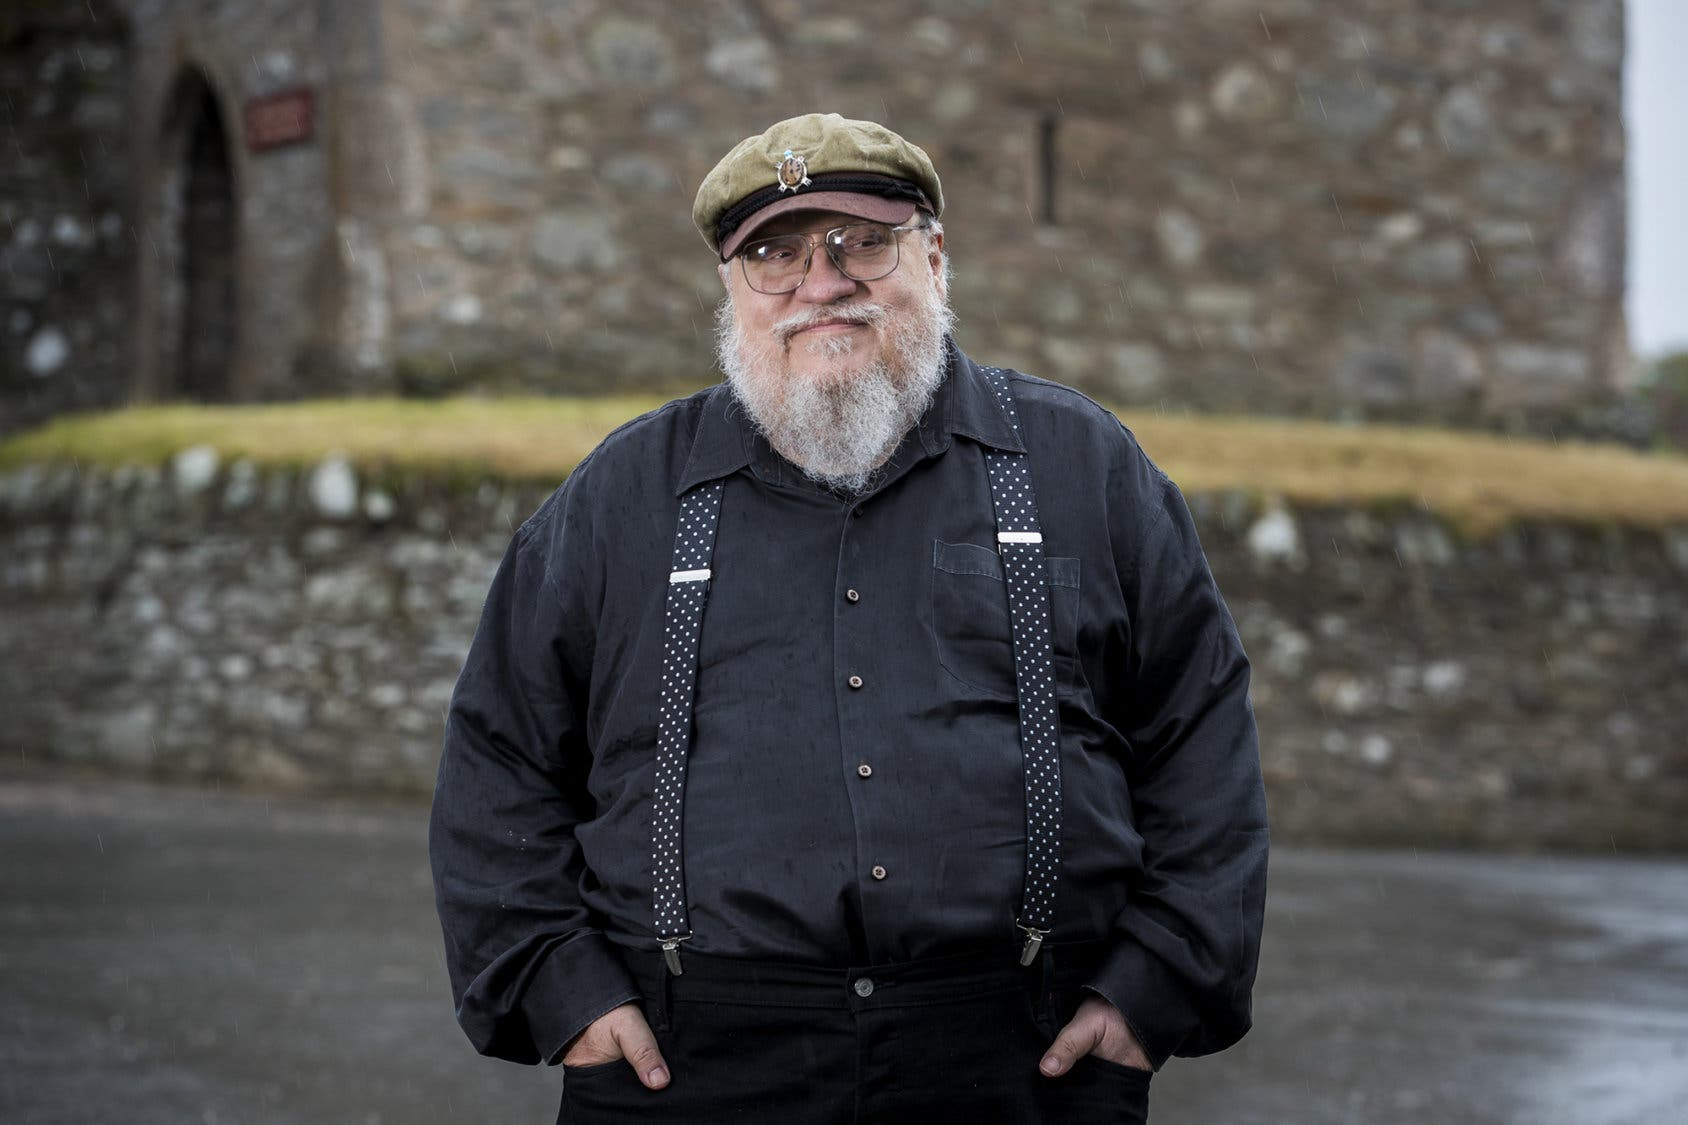 George R.R. Martin HBO Game of Thrones spin-offs